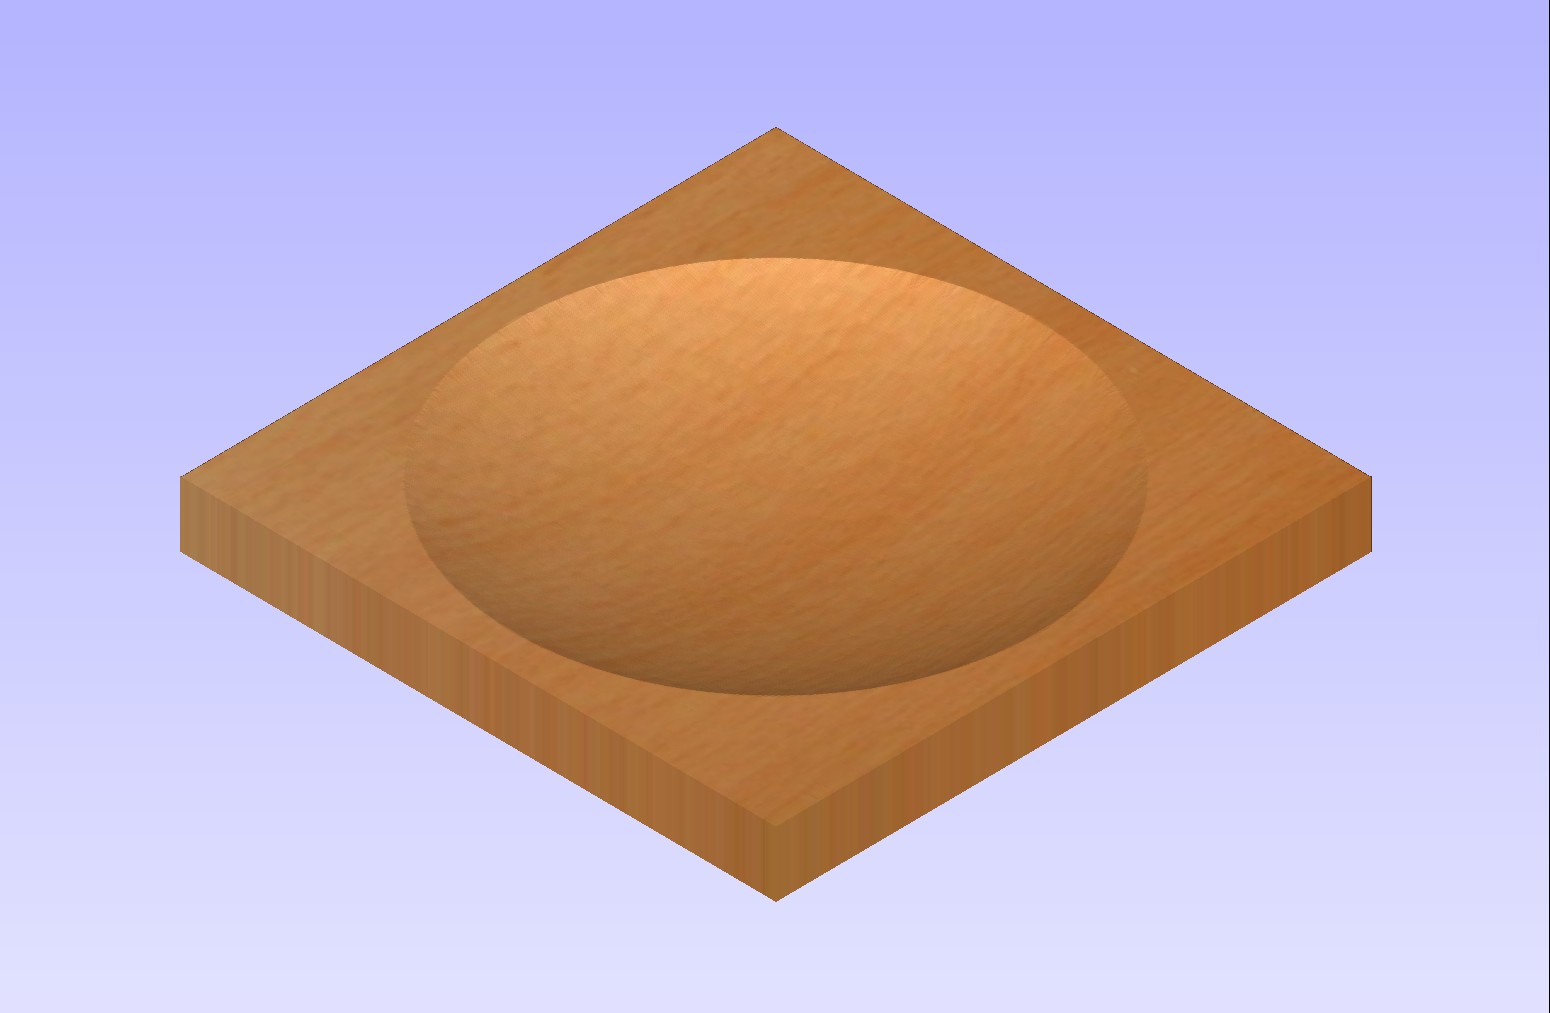 dish shape toolpath preview.jpg